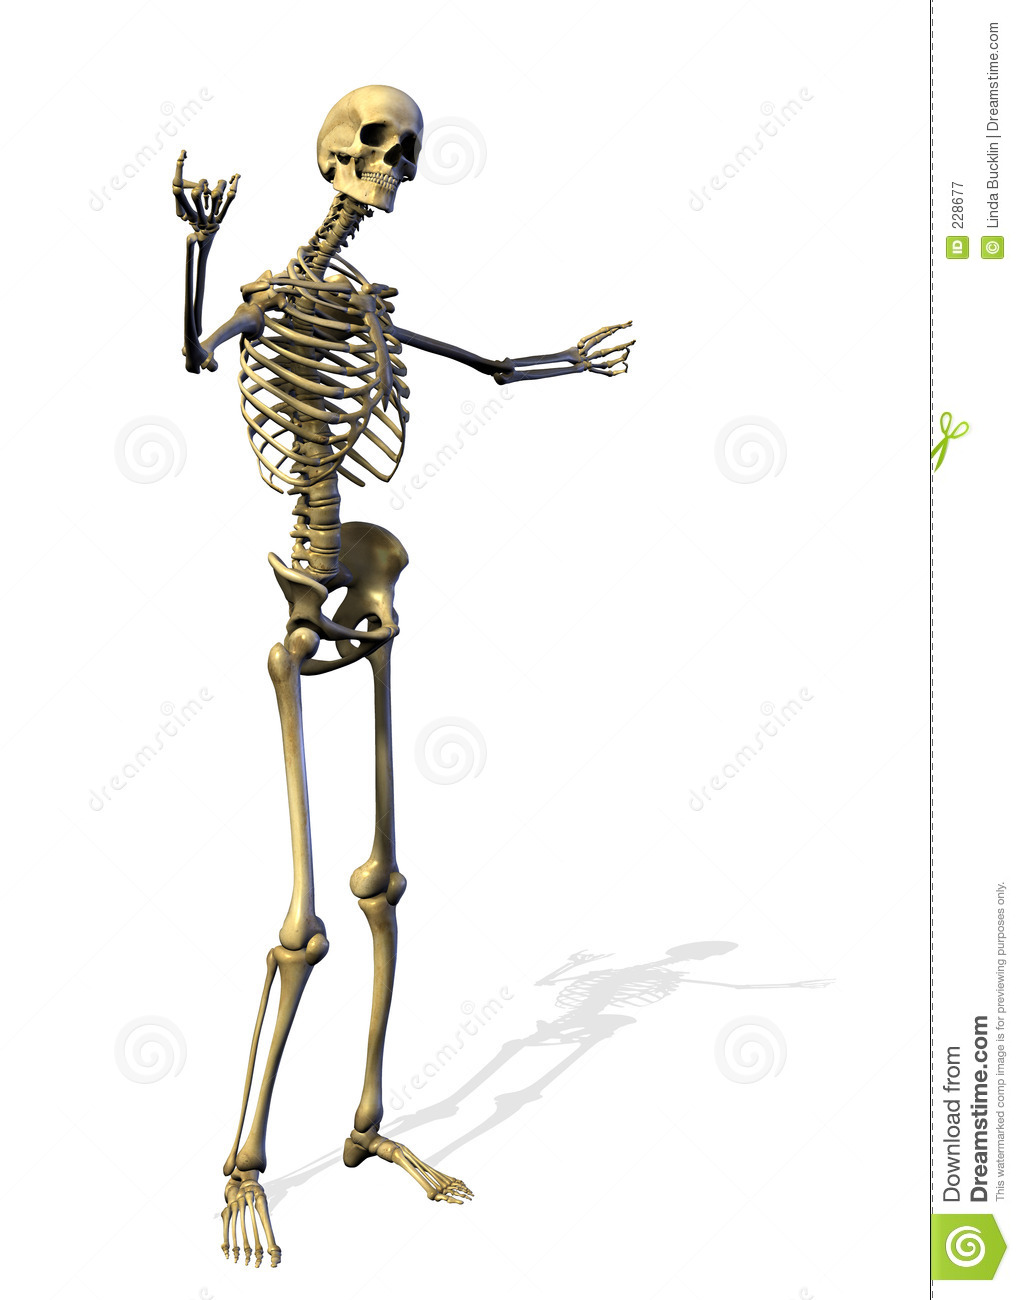 Skeleton - Welcome Gesture - includes clipping path